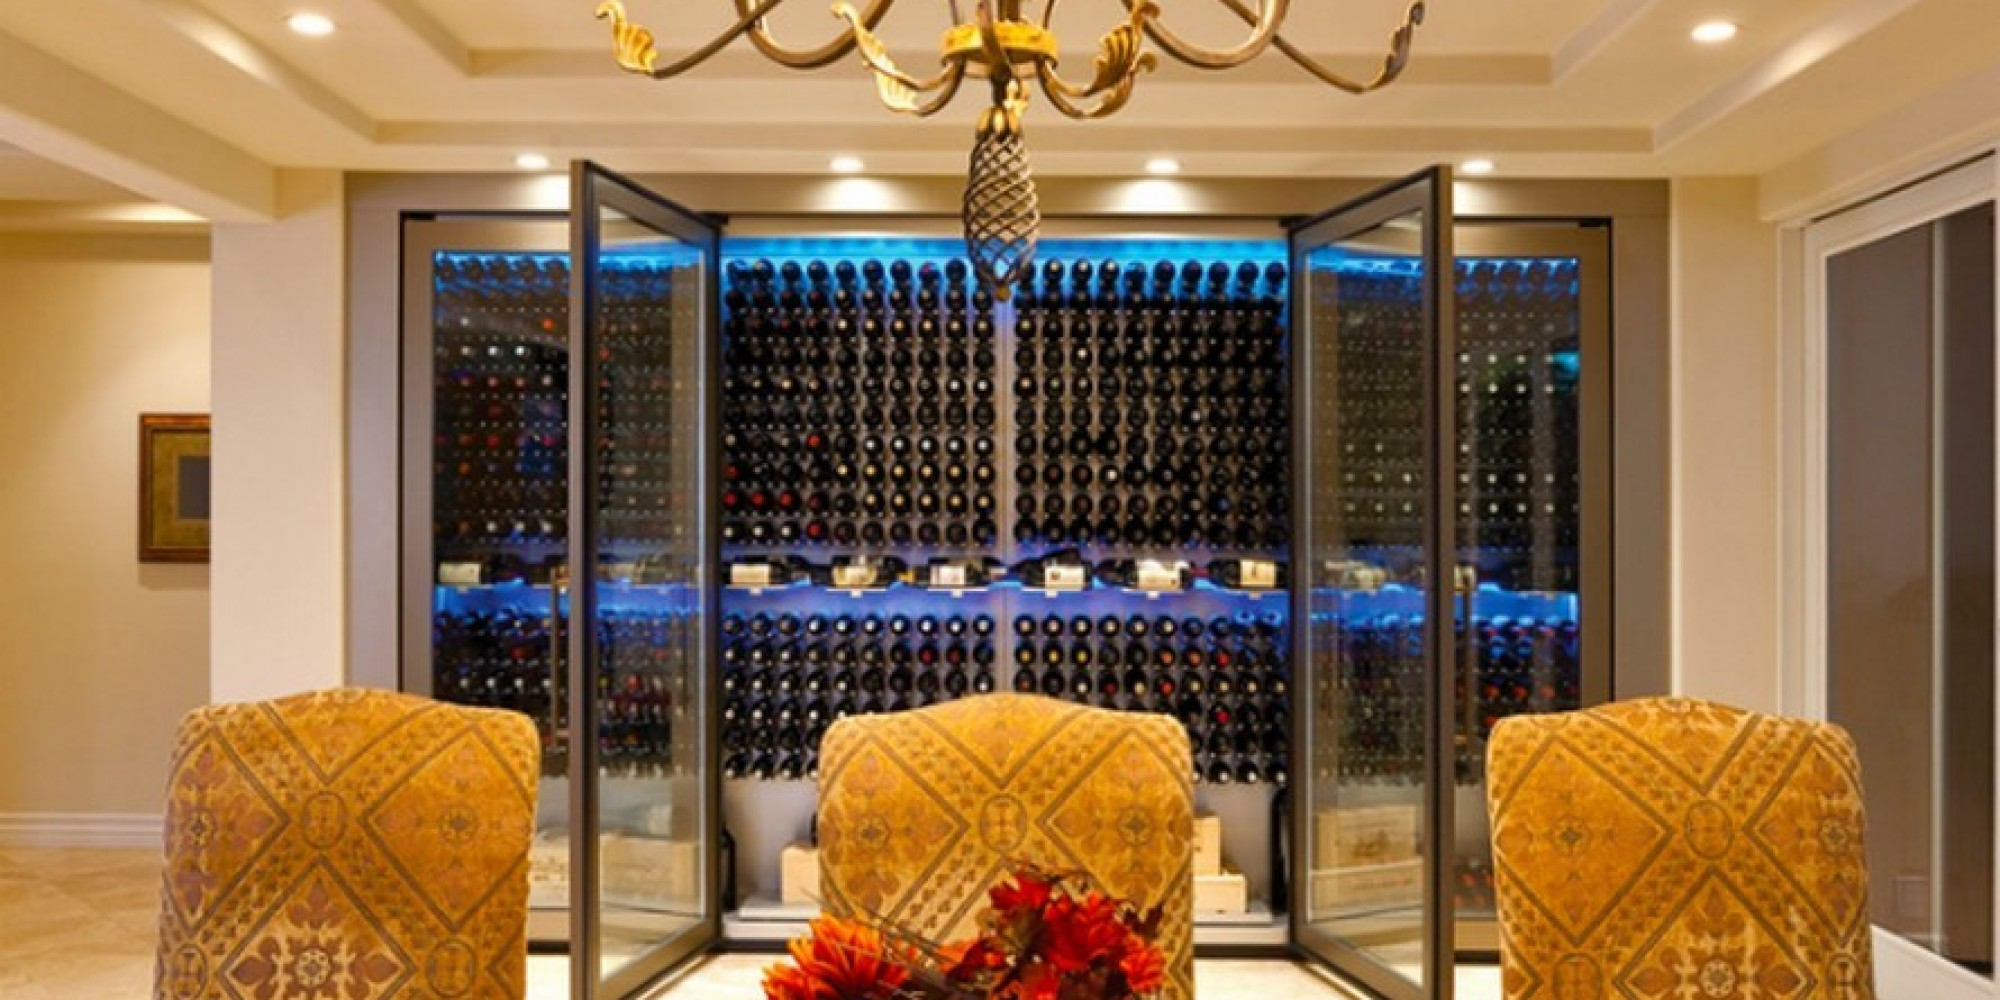 These 14 Incredible Wine Cellars Are What Dreams Are Made